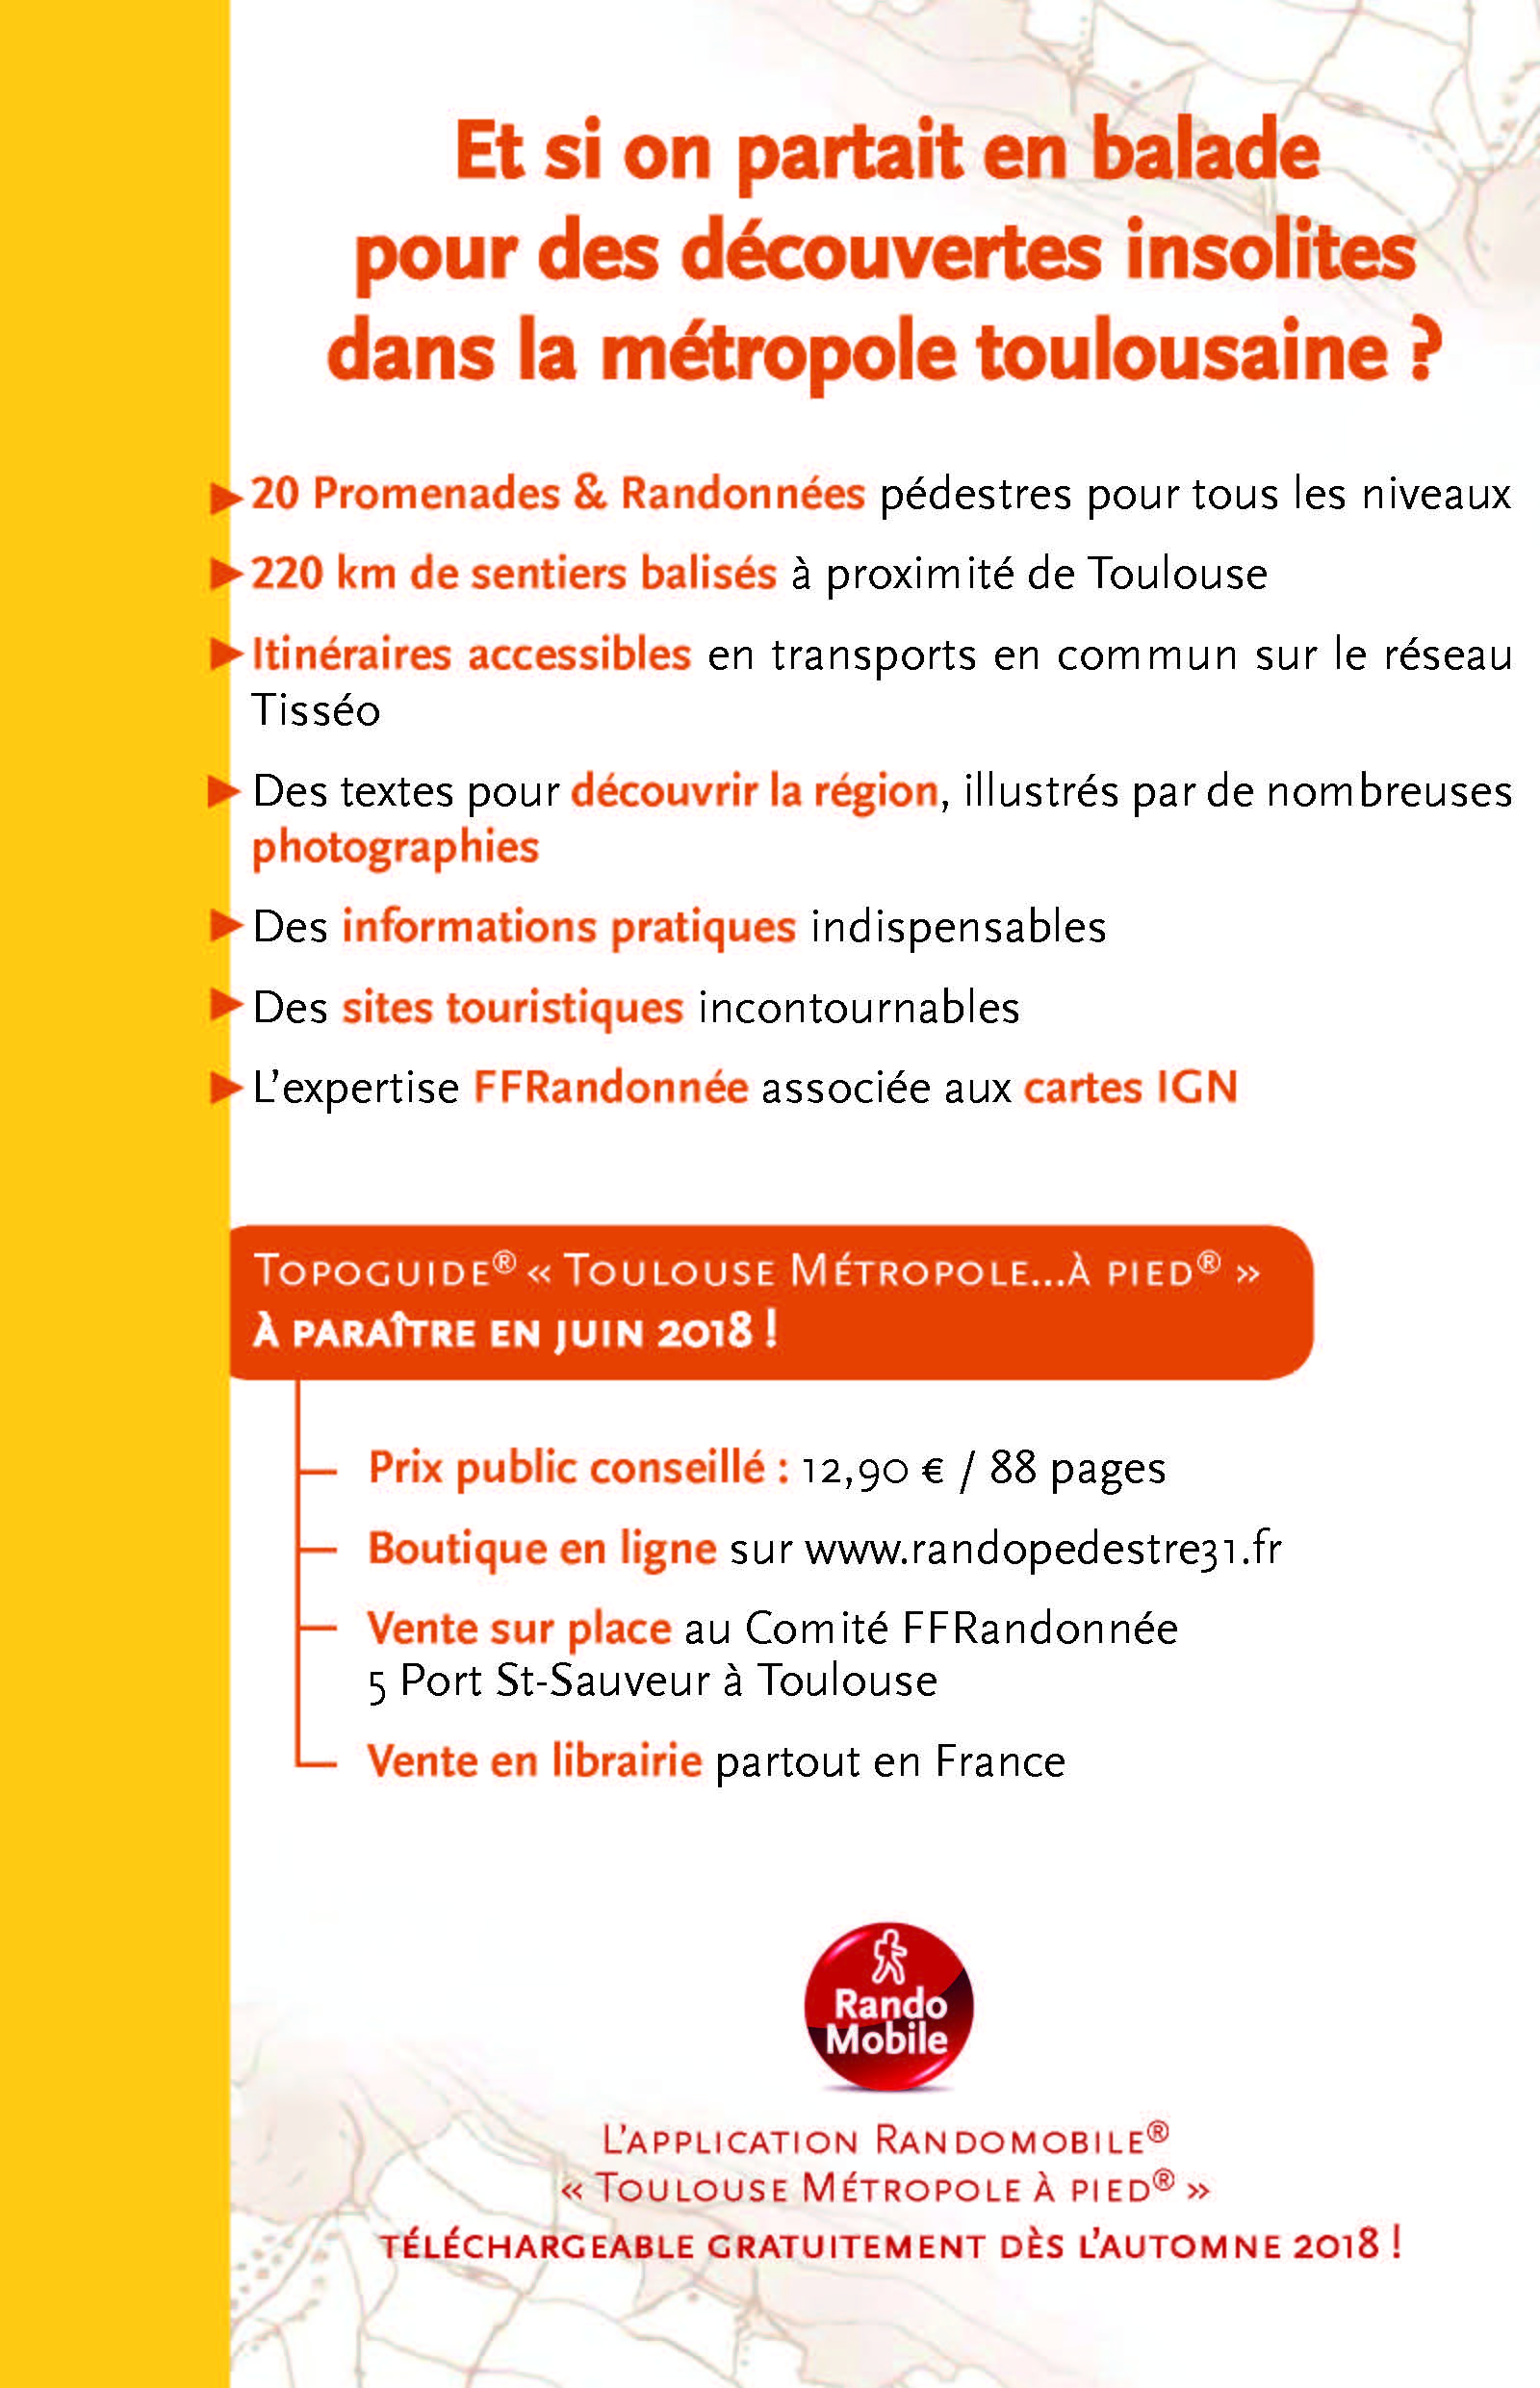 flyer toulouse metropole a pied Page 2